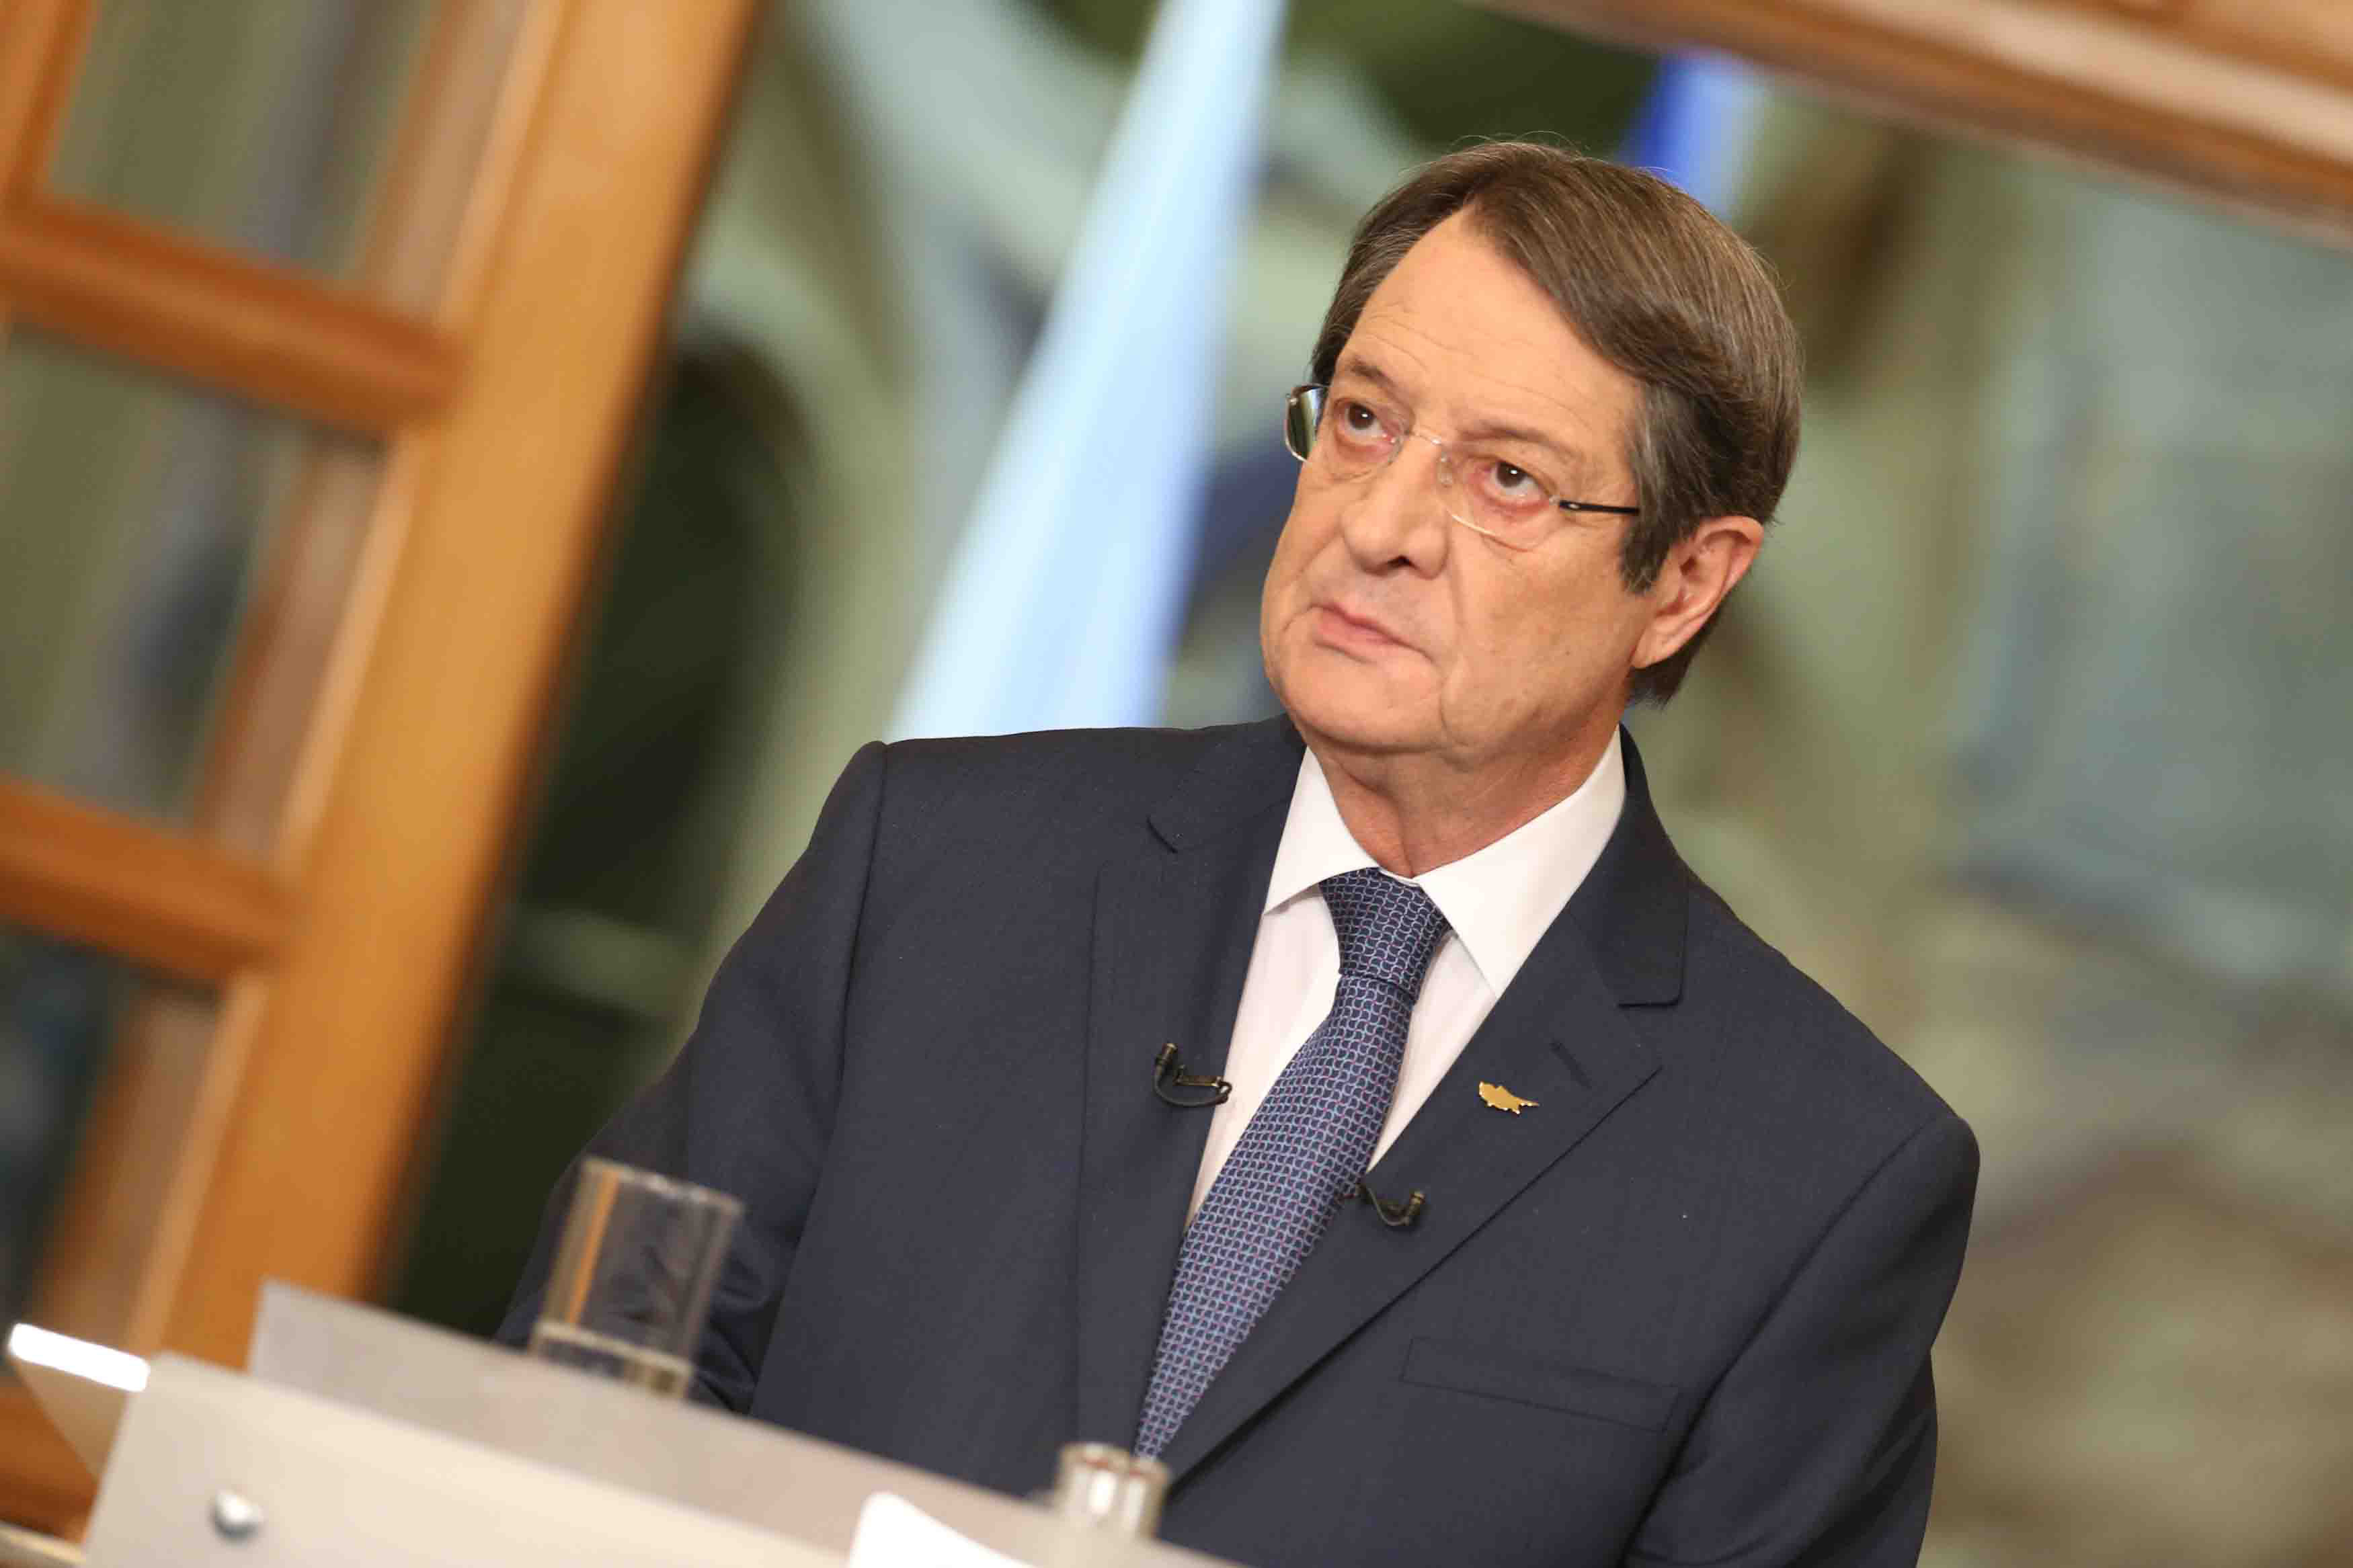 Anastasiades: The basic conditions which could constitute the terms of reference have been set